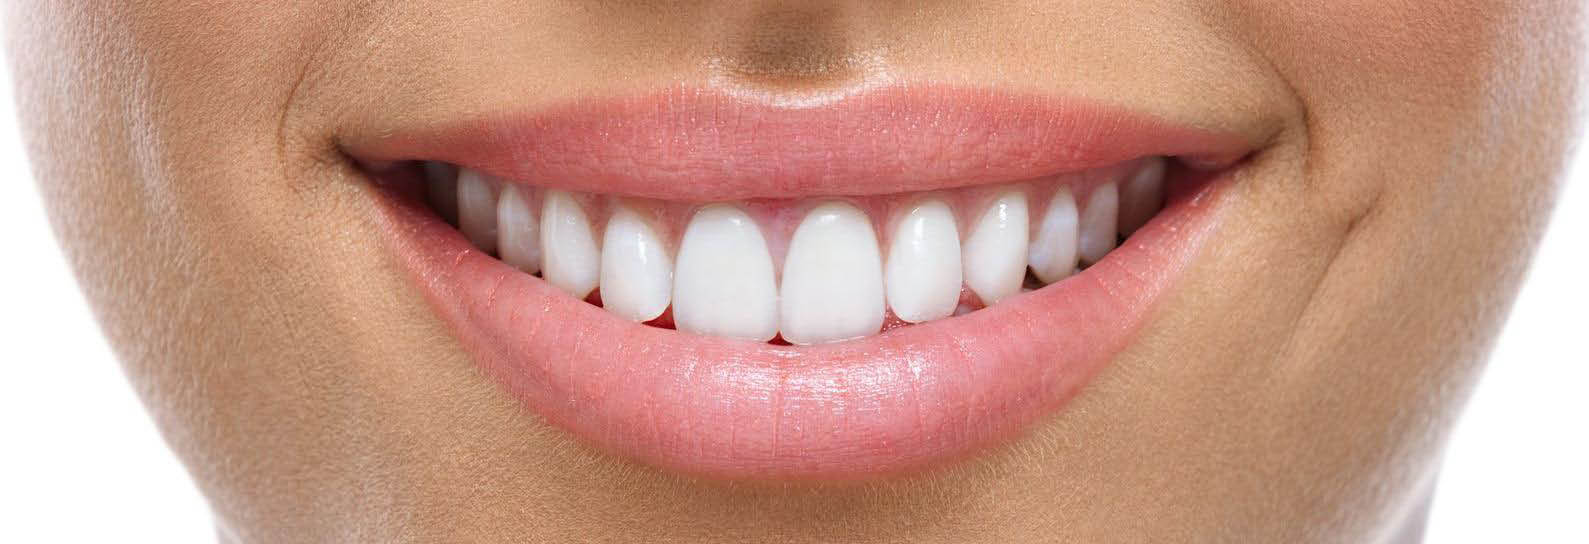 Dentist Toledo Ohio whitening braces dentures